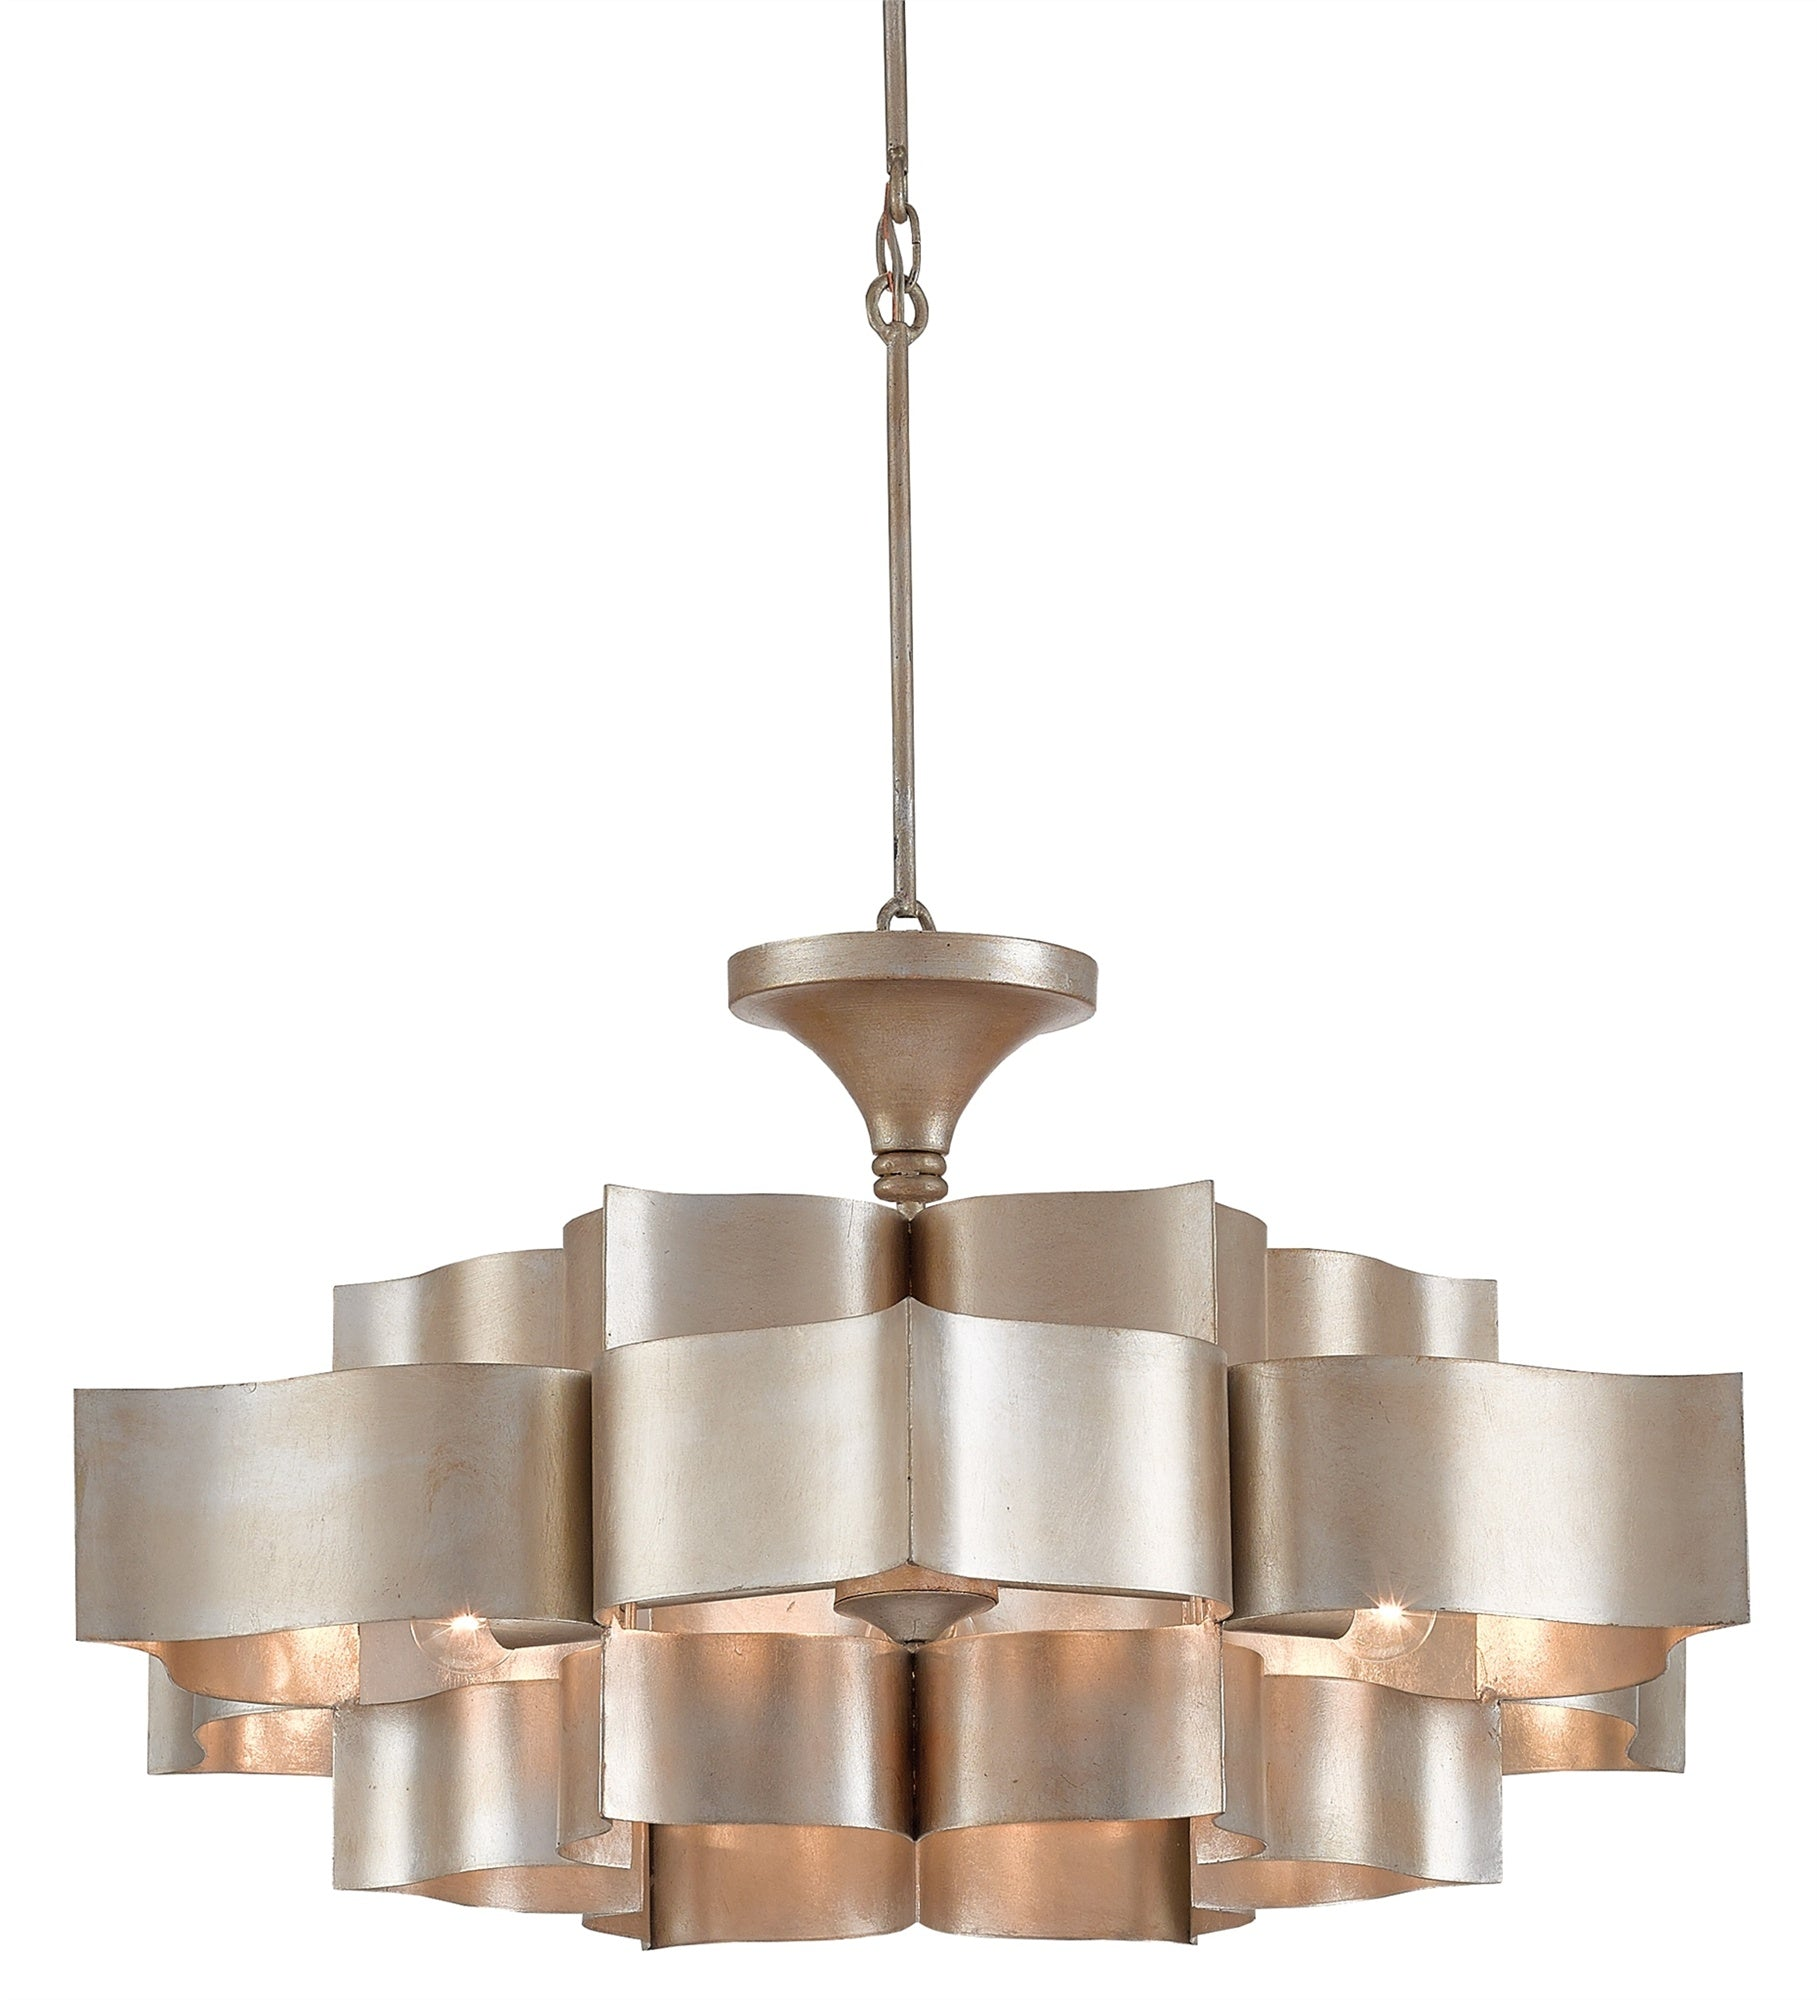 luxury glass chandelier kitchen glam home products silver light pendant hollywood square art mariana metal soft leaf lighting skyler island